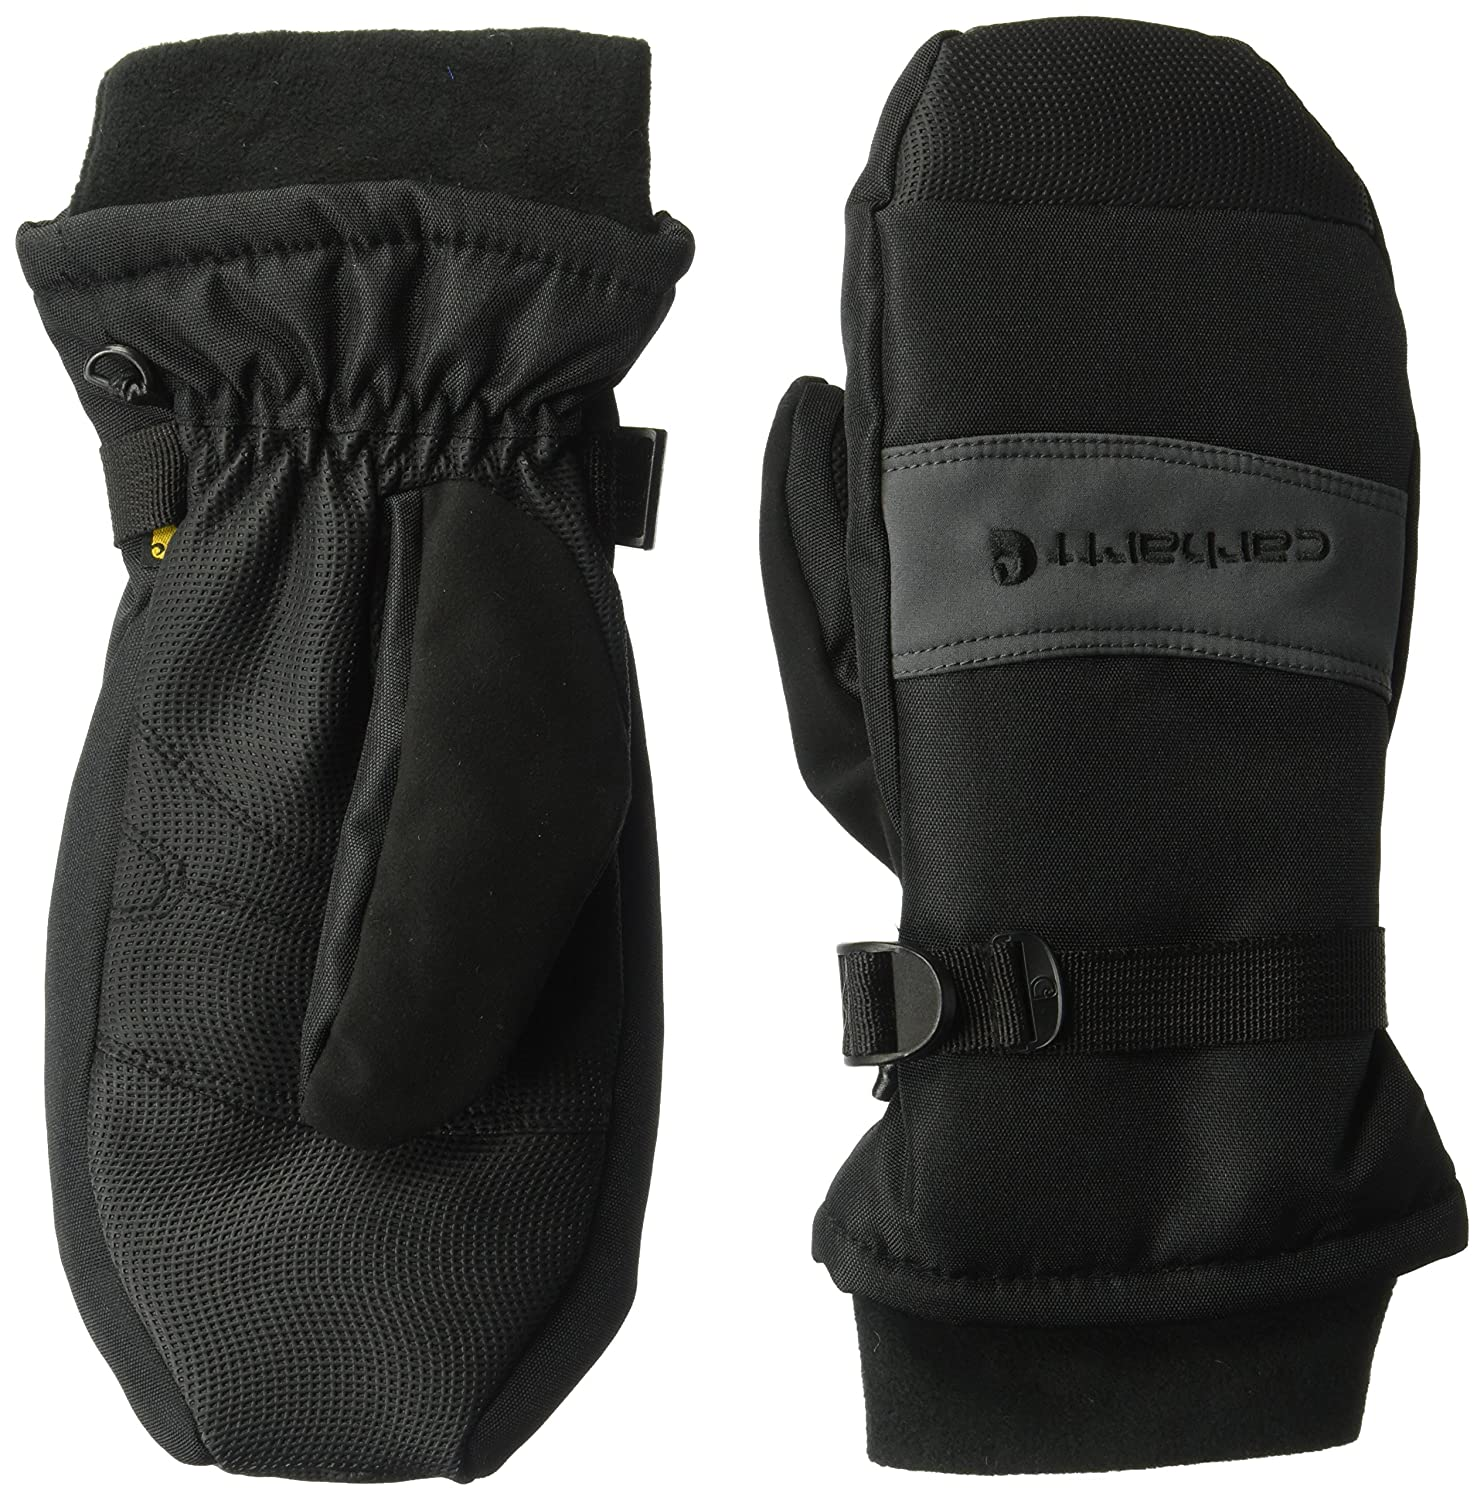 Carhartt Men's W.P. Waterproof Insulated Mitt Carhartt Men's Gloves A616